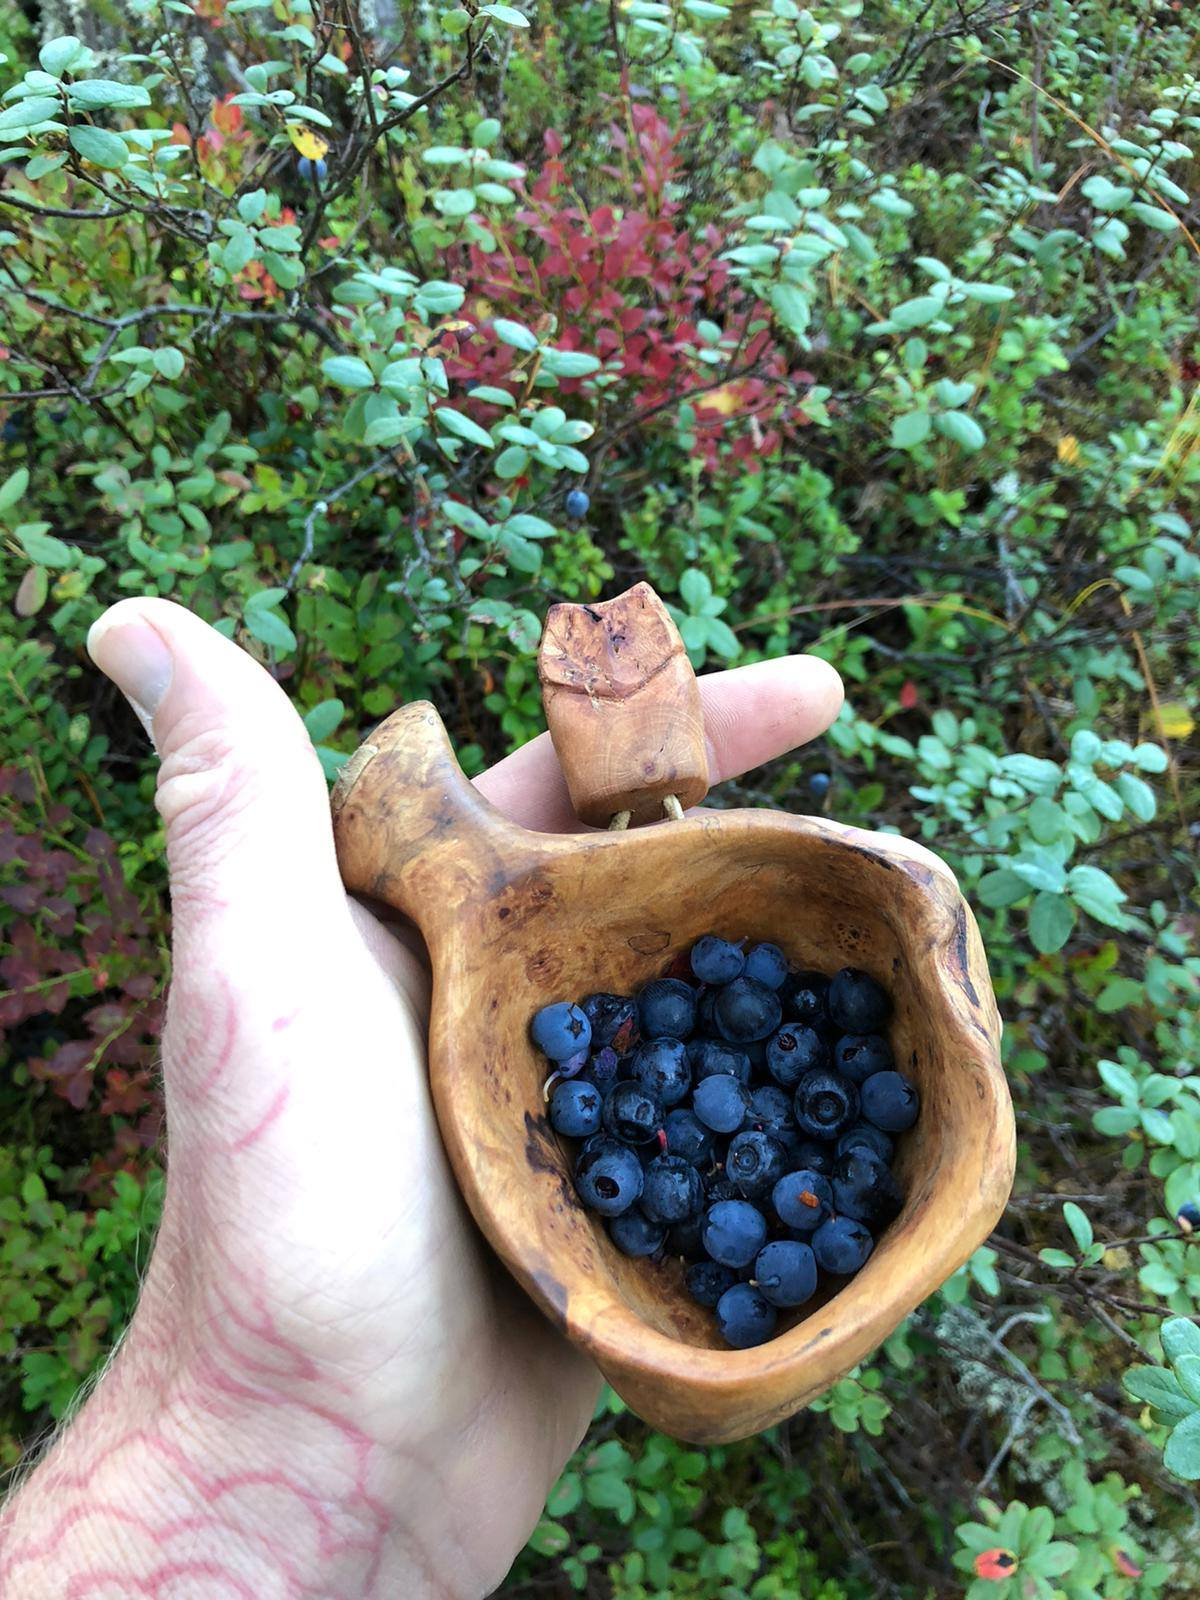 LBN 10 days living on the frontier noggin with blueberries